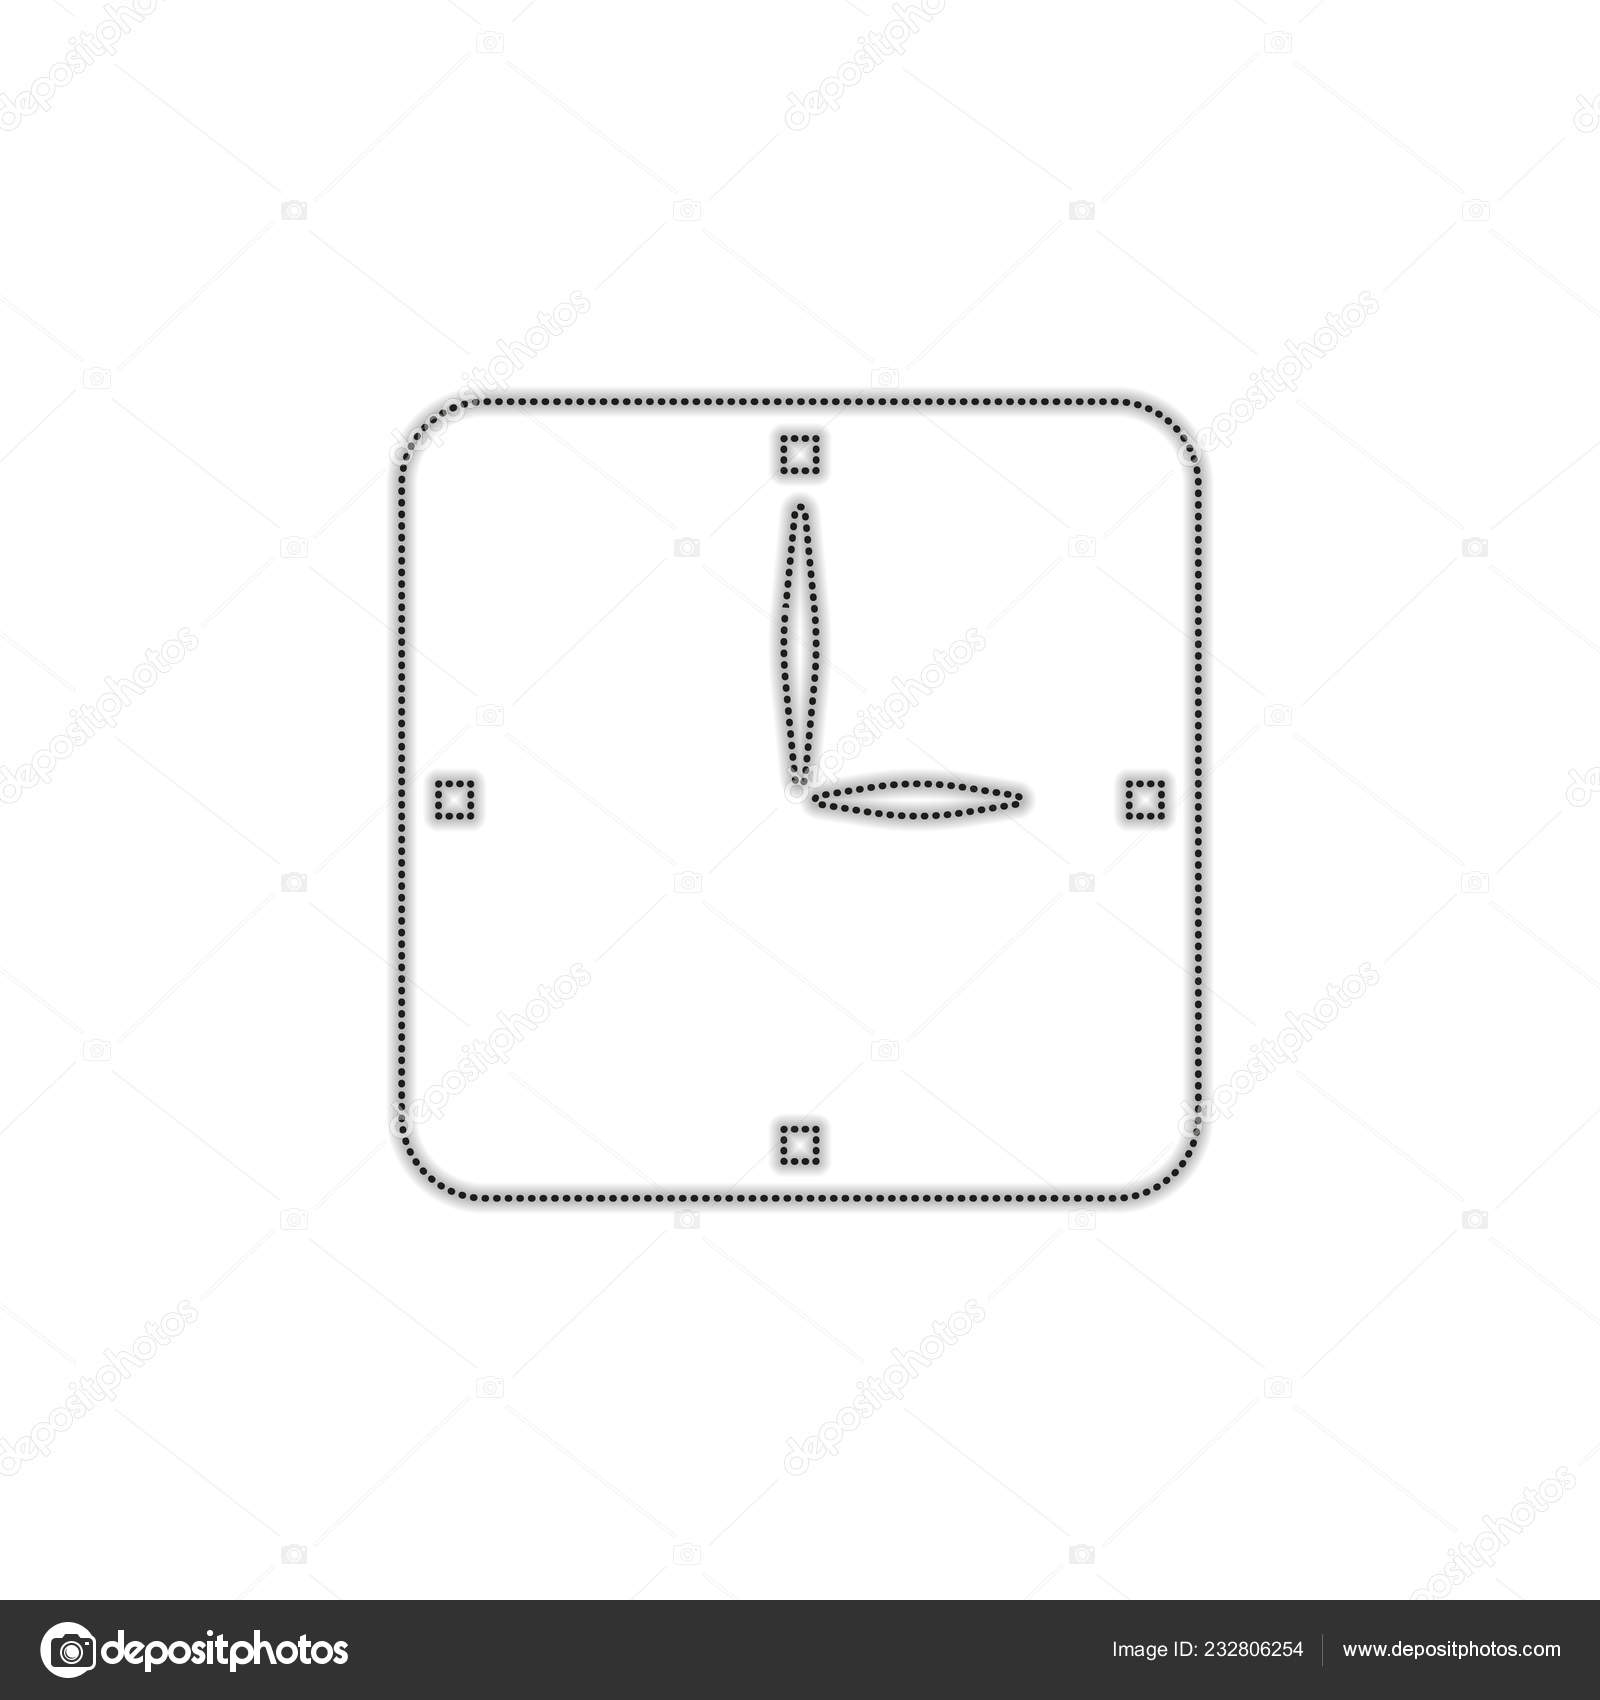 hight resolution of simple clock icon dotted outline silhouette shadow white background stock vector